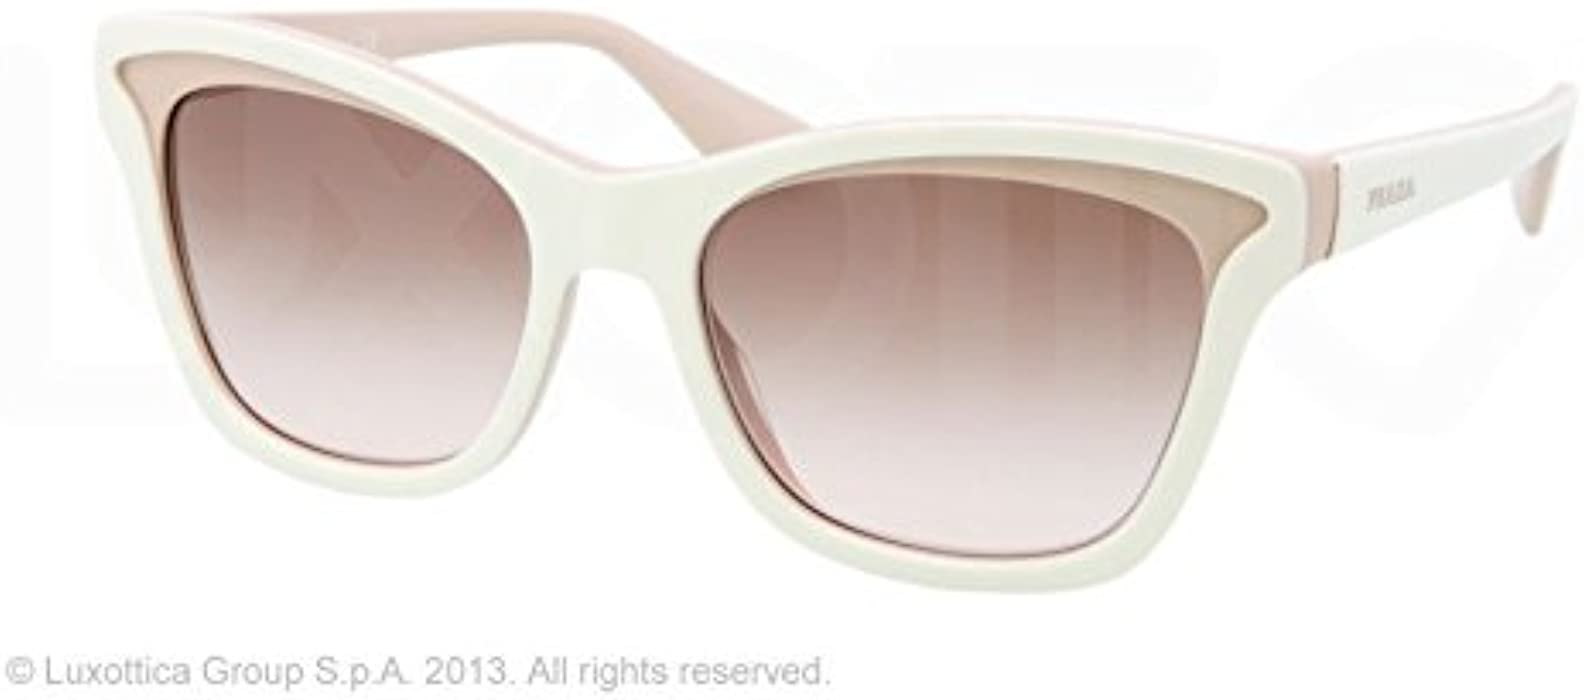 9c3ab8e69f86a Prada 38289 KAW0A6 Ivory and Mink 16PS Parallel Universes Cats Eyes  Sunglasses